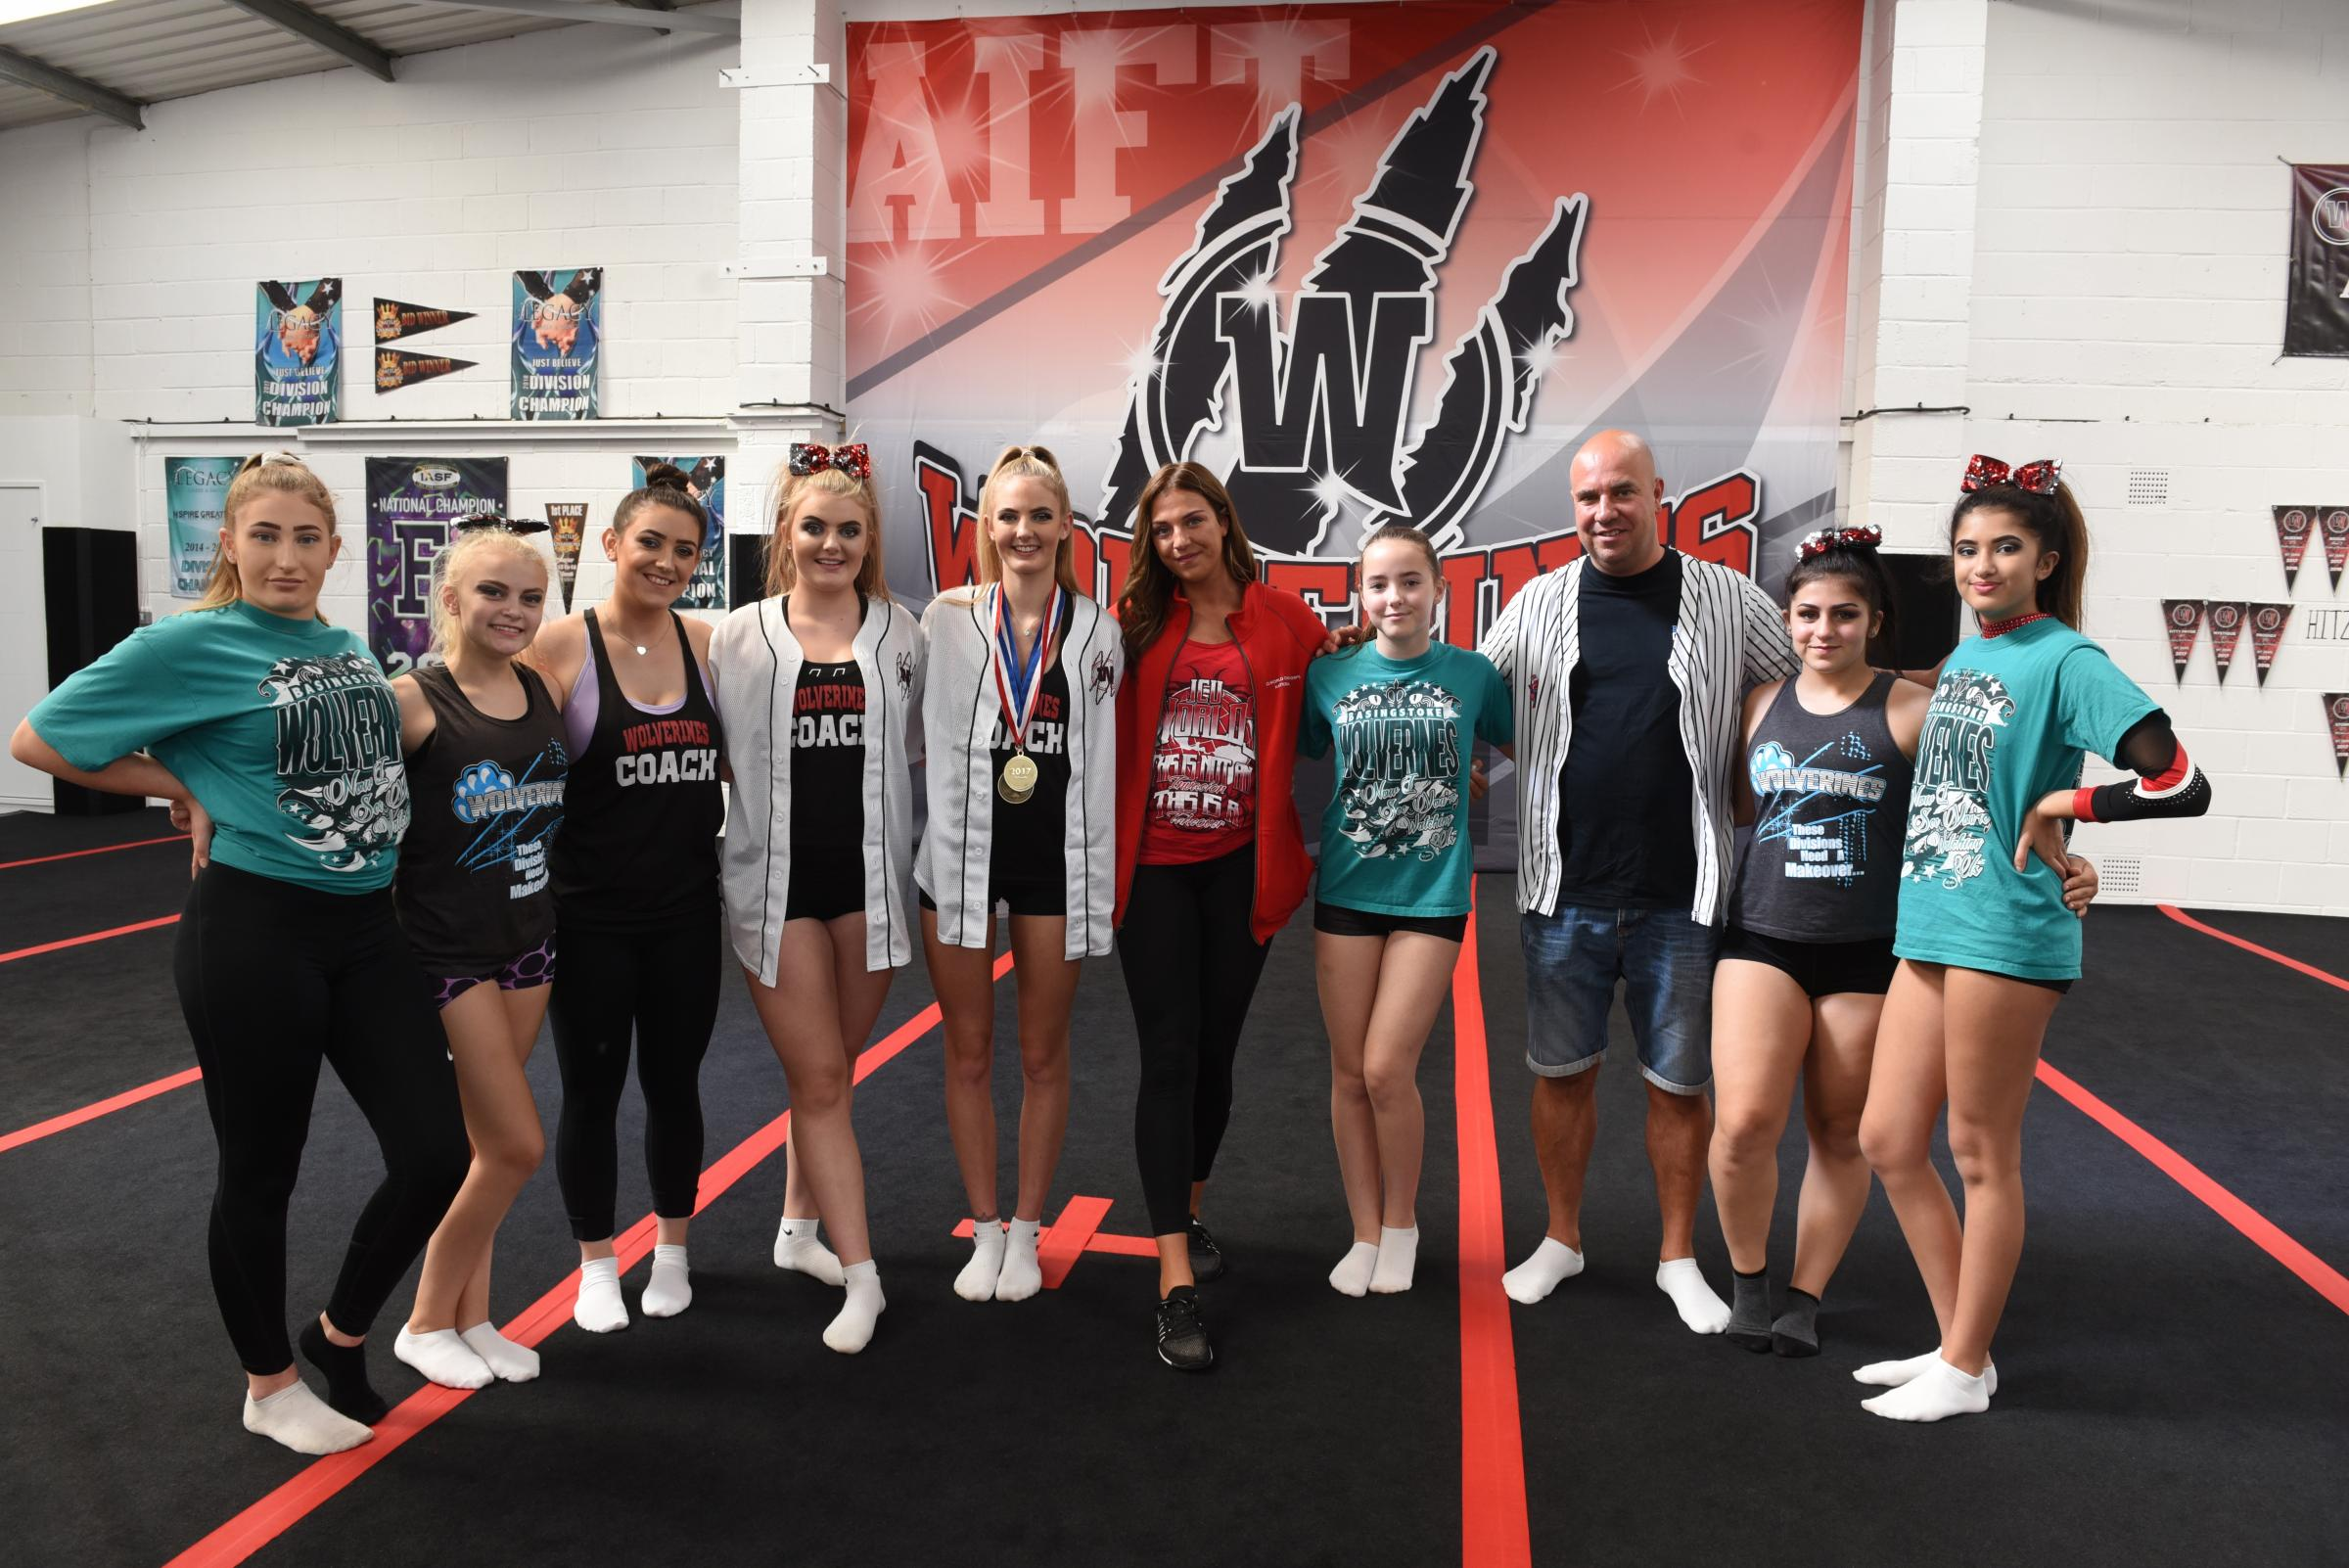 New Cheer Academy. Daneshill Central, Armstrong Road, Basingstoke. Basingstoke Wolverines Cheer Academy opening its new gym with BCD (British Cheer Dad) cutting the ribbon.